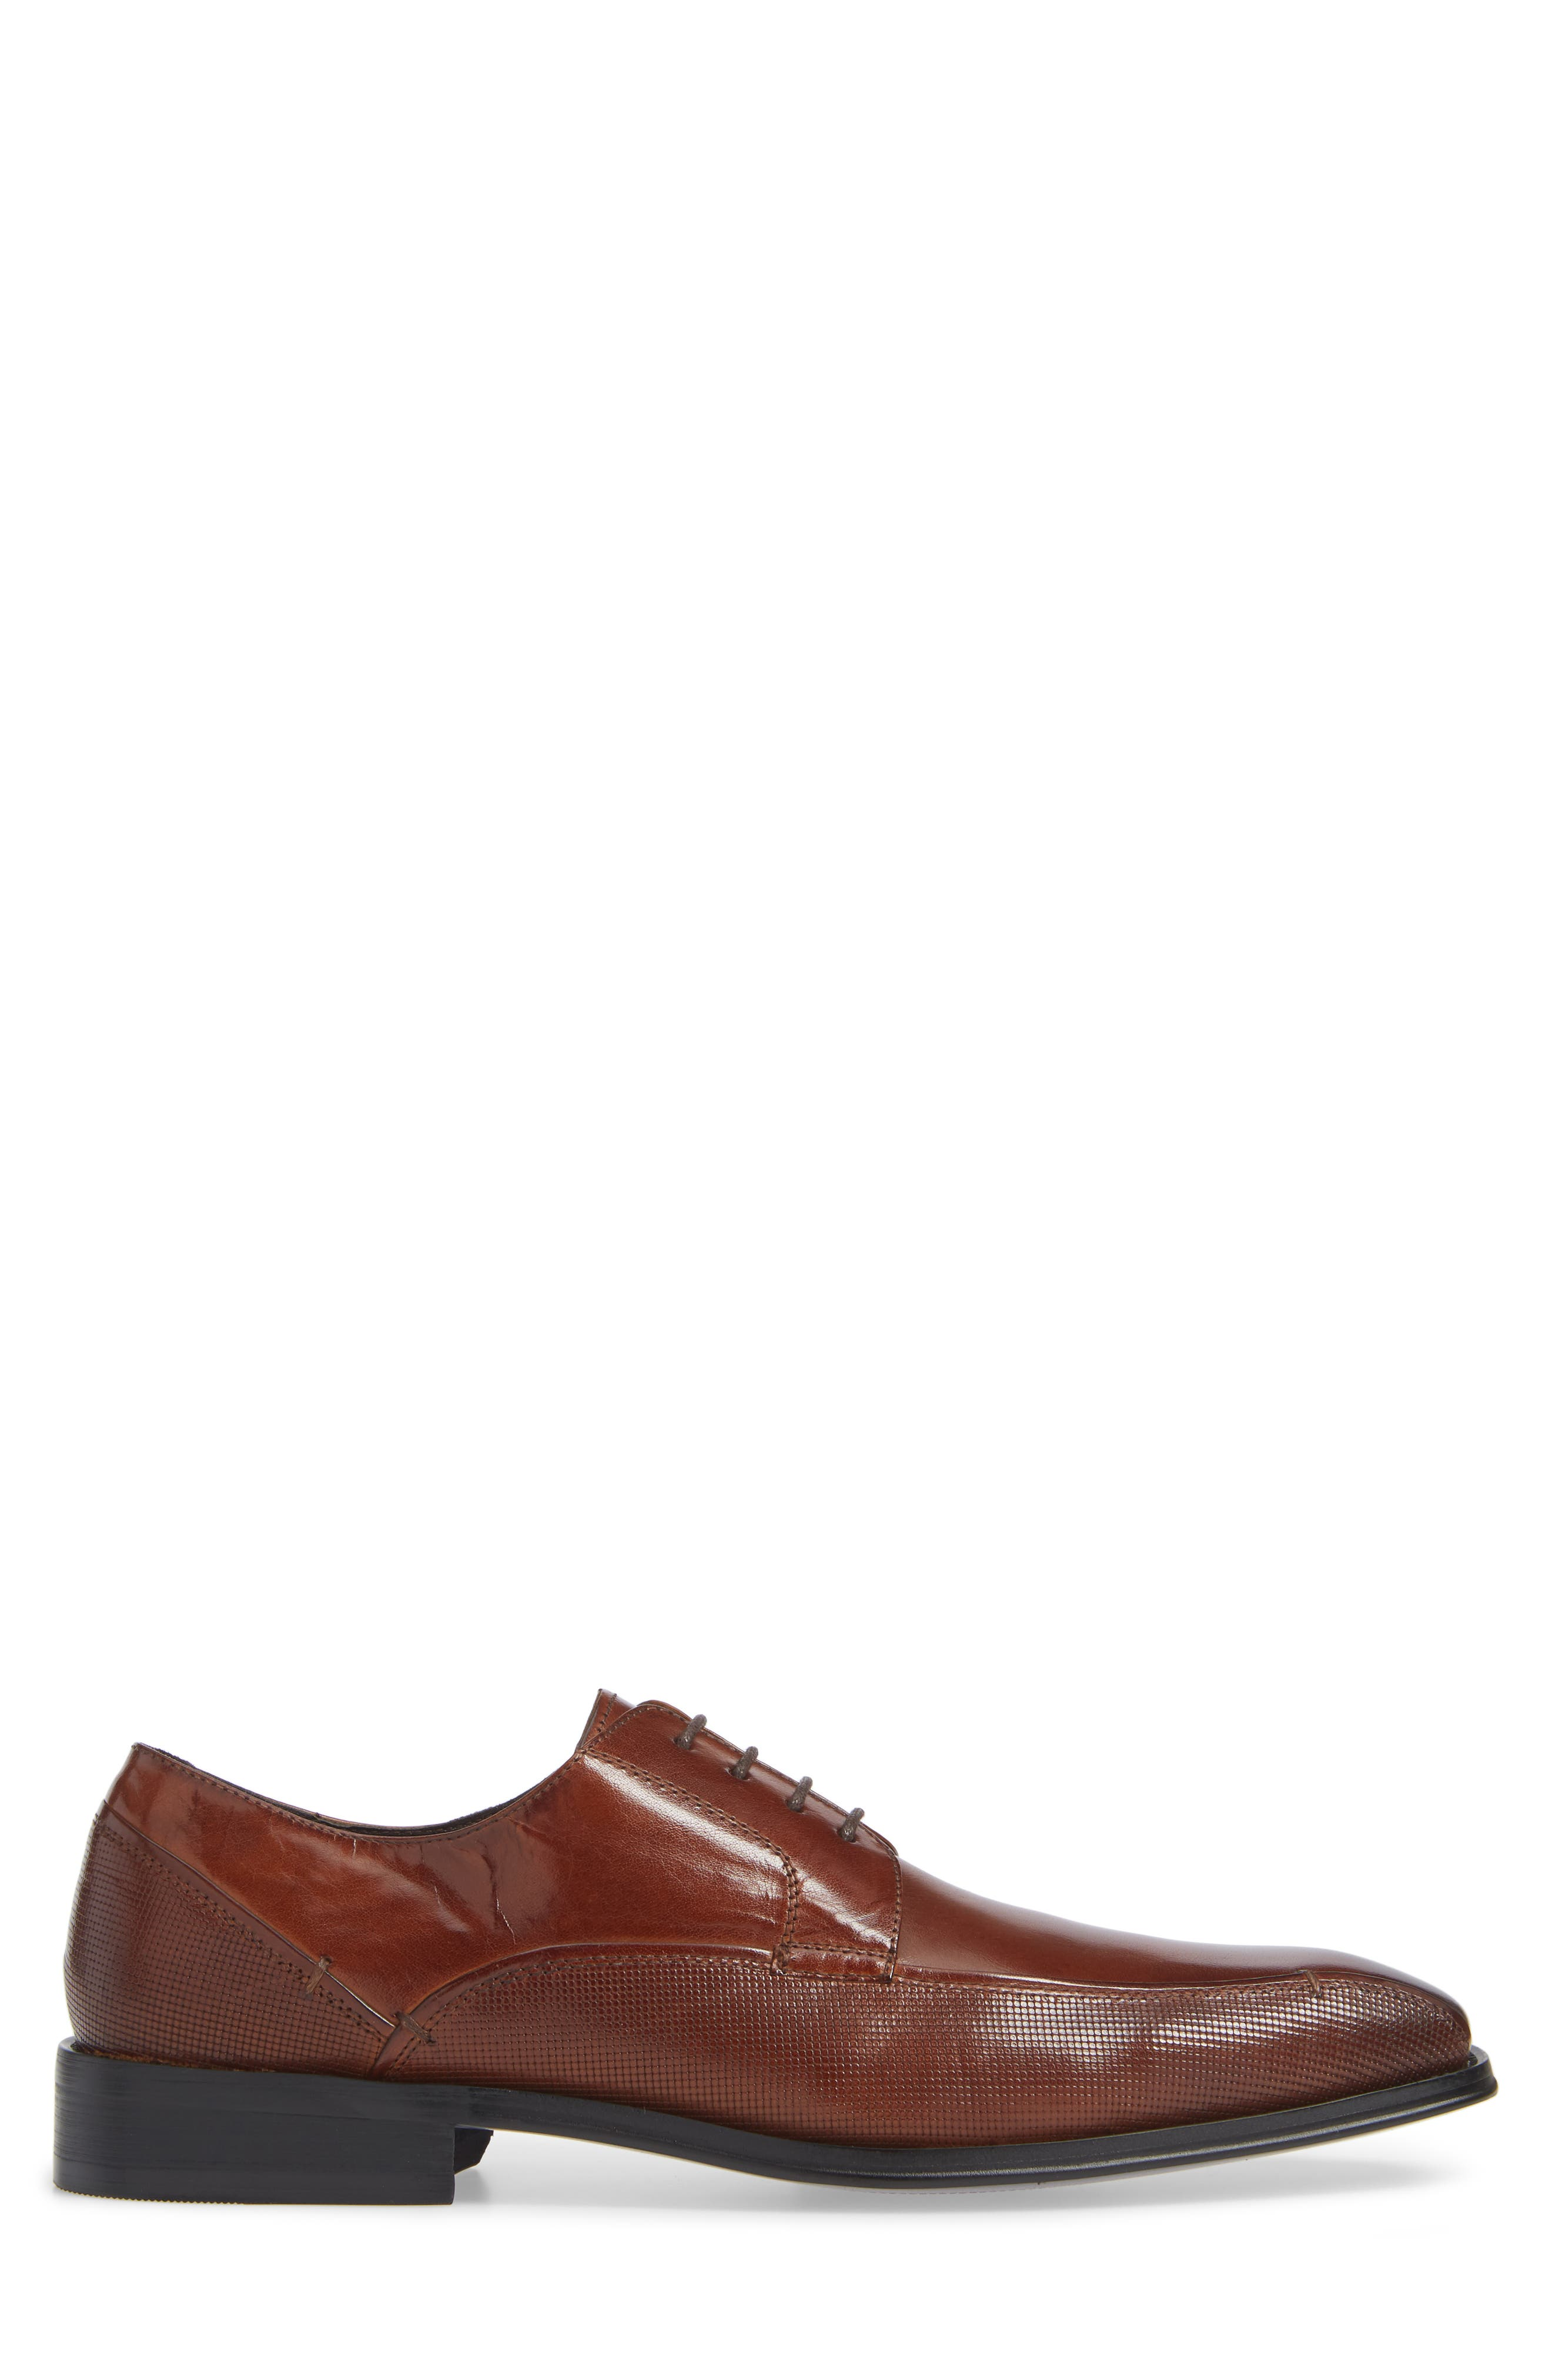 REACTION KENNETH COLE, Witter Textured Bike Toe Derby, Alternate thumbnail 3, color, COGNAC LEATHER